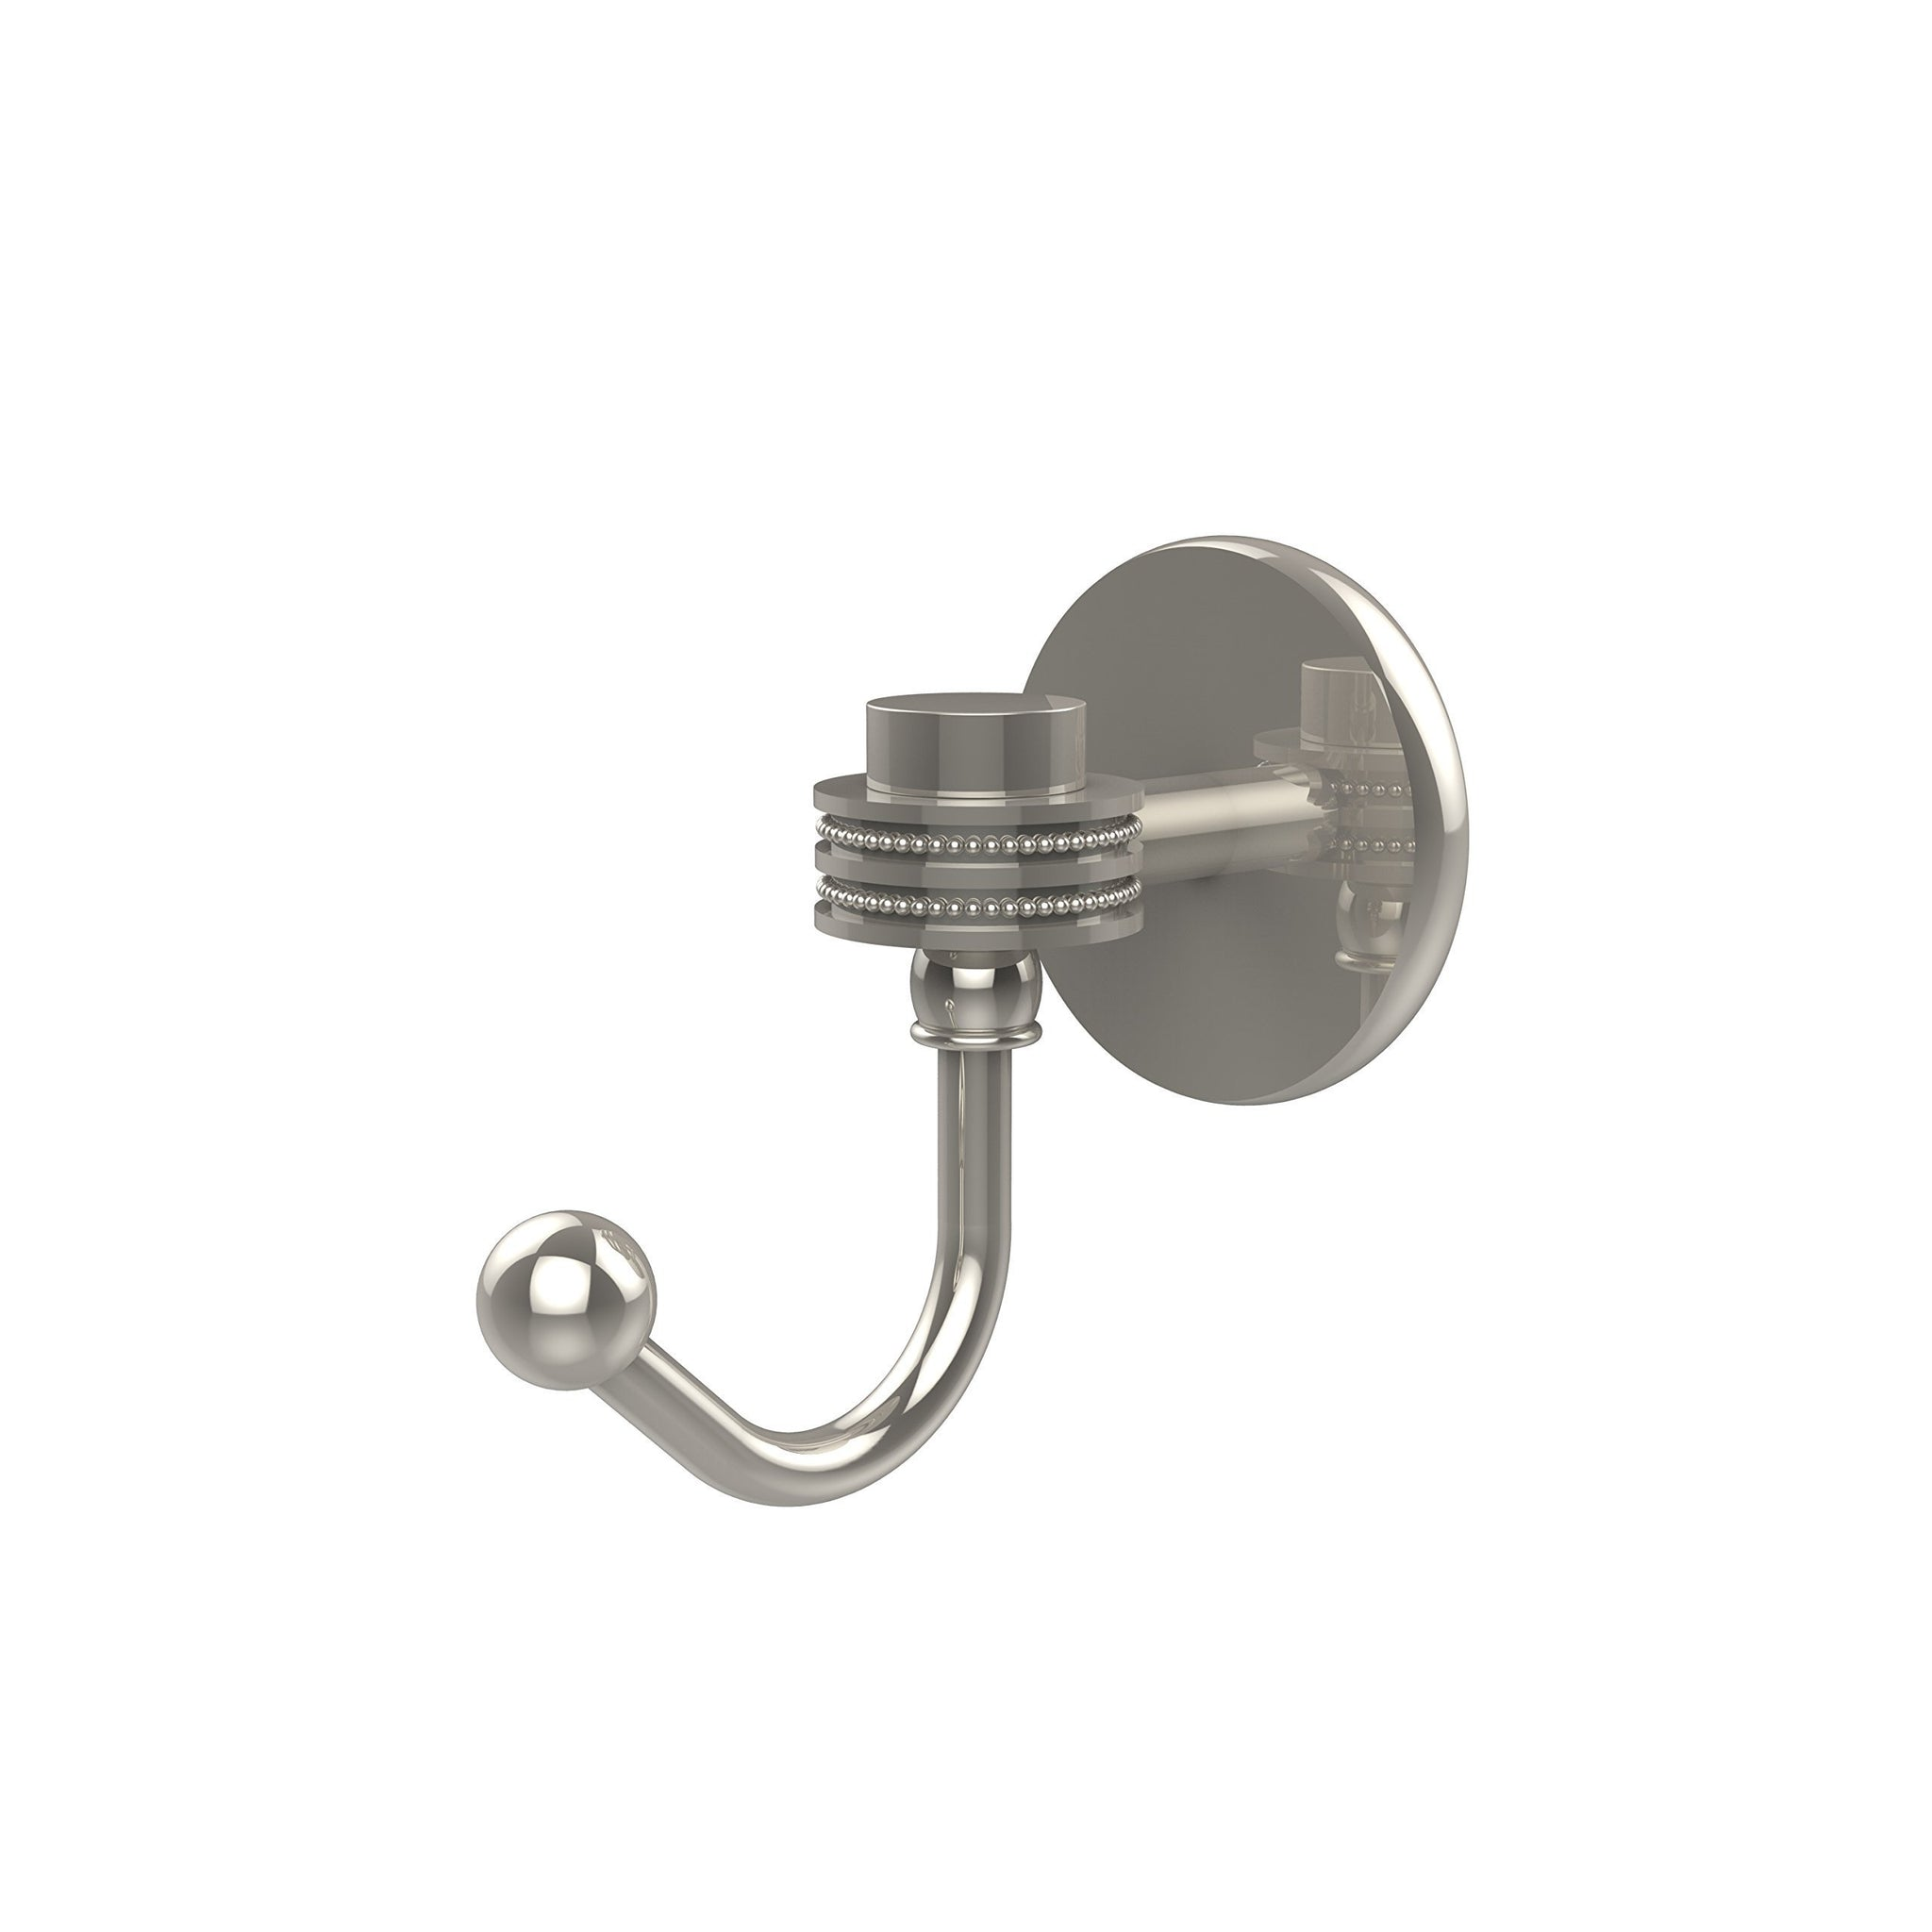 Allied Brass 7120D-PNI Satellite Orbit One Collection Utility Hook, Polished Nickel